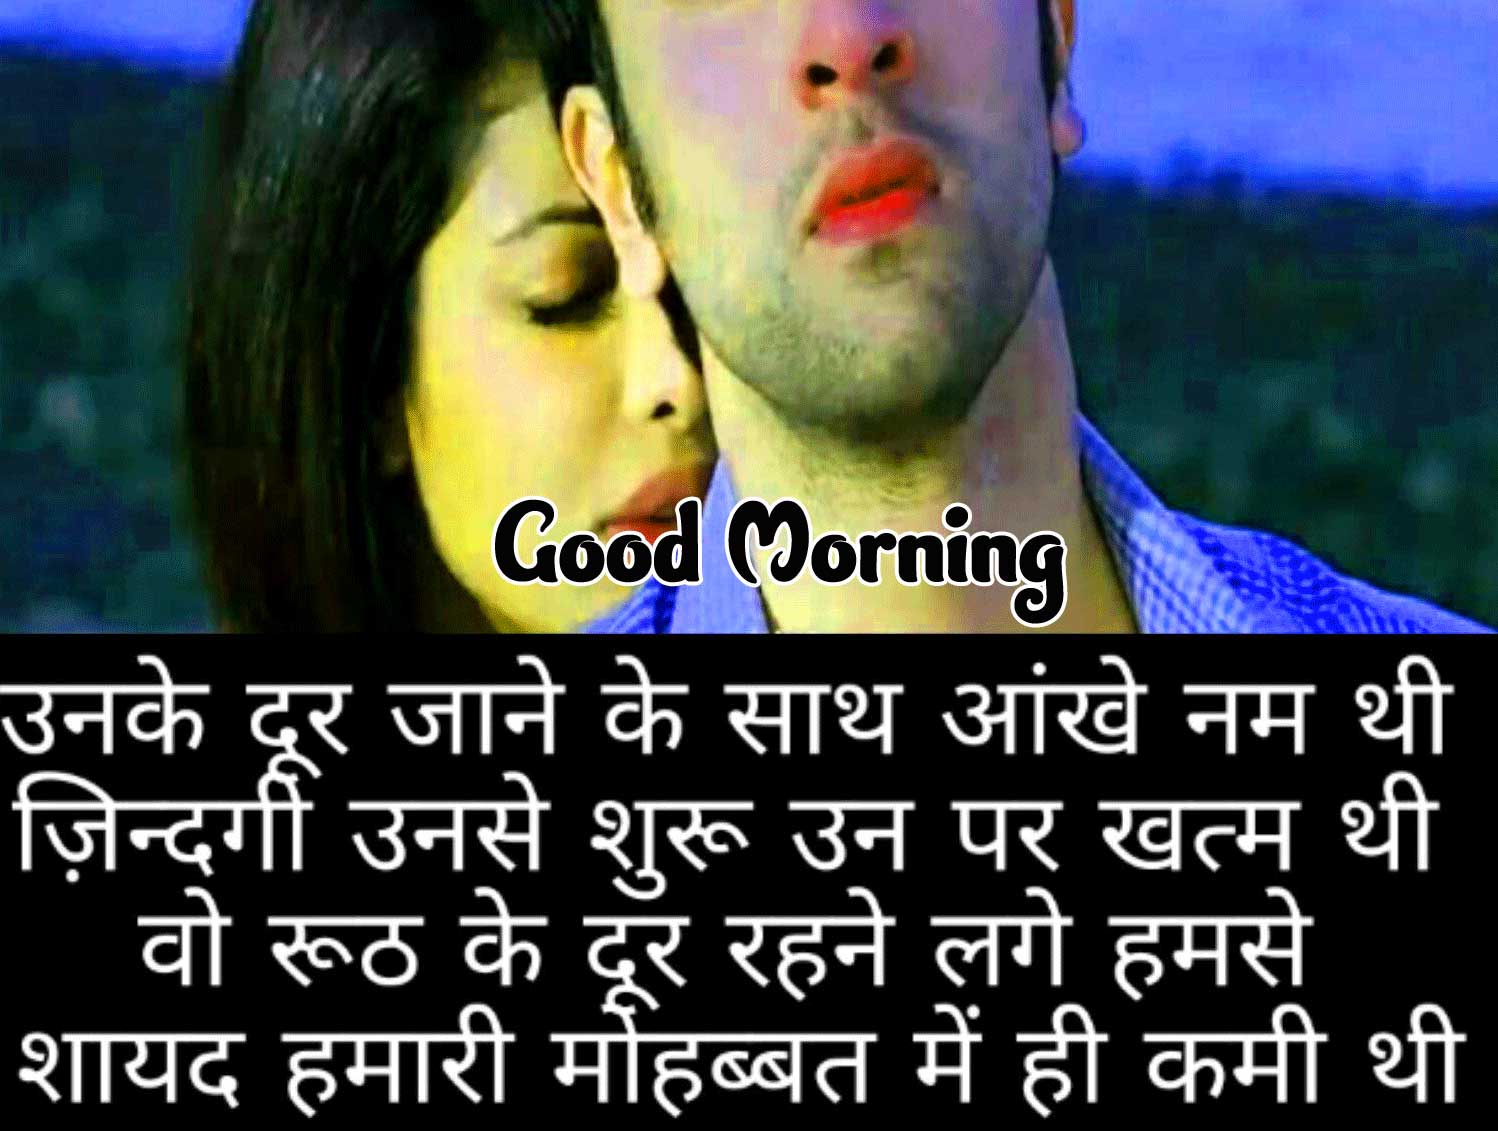 Hindi Quotes Shayari Good Morning Images 84